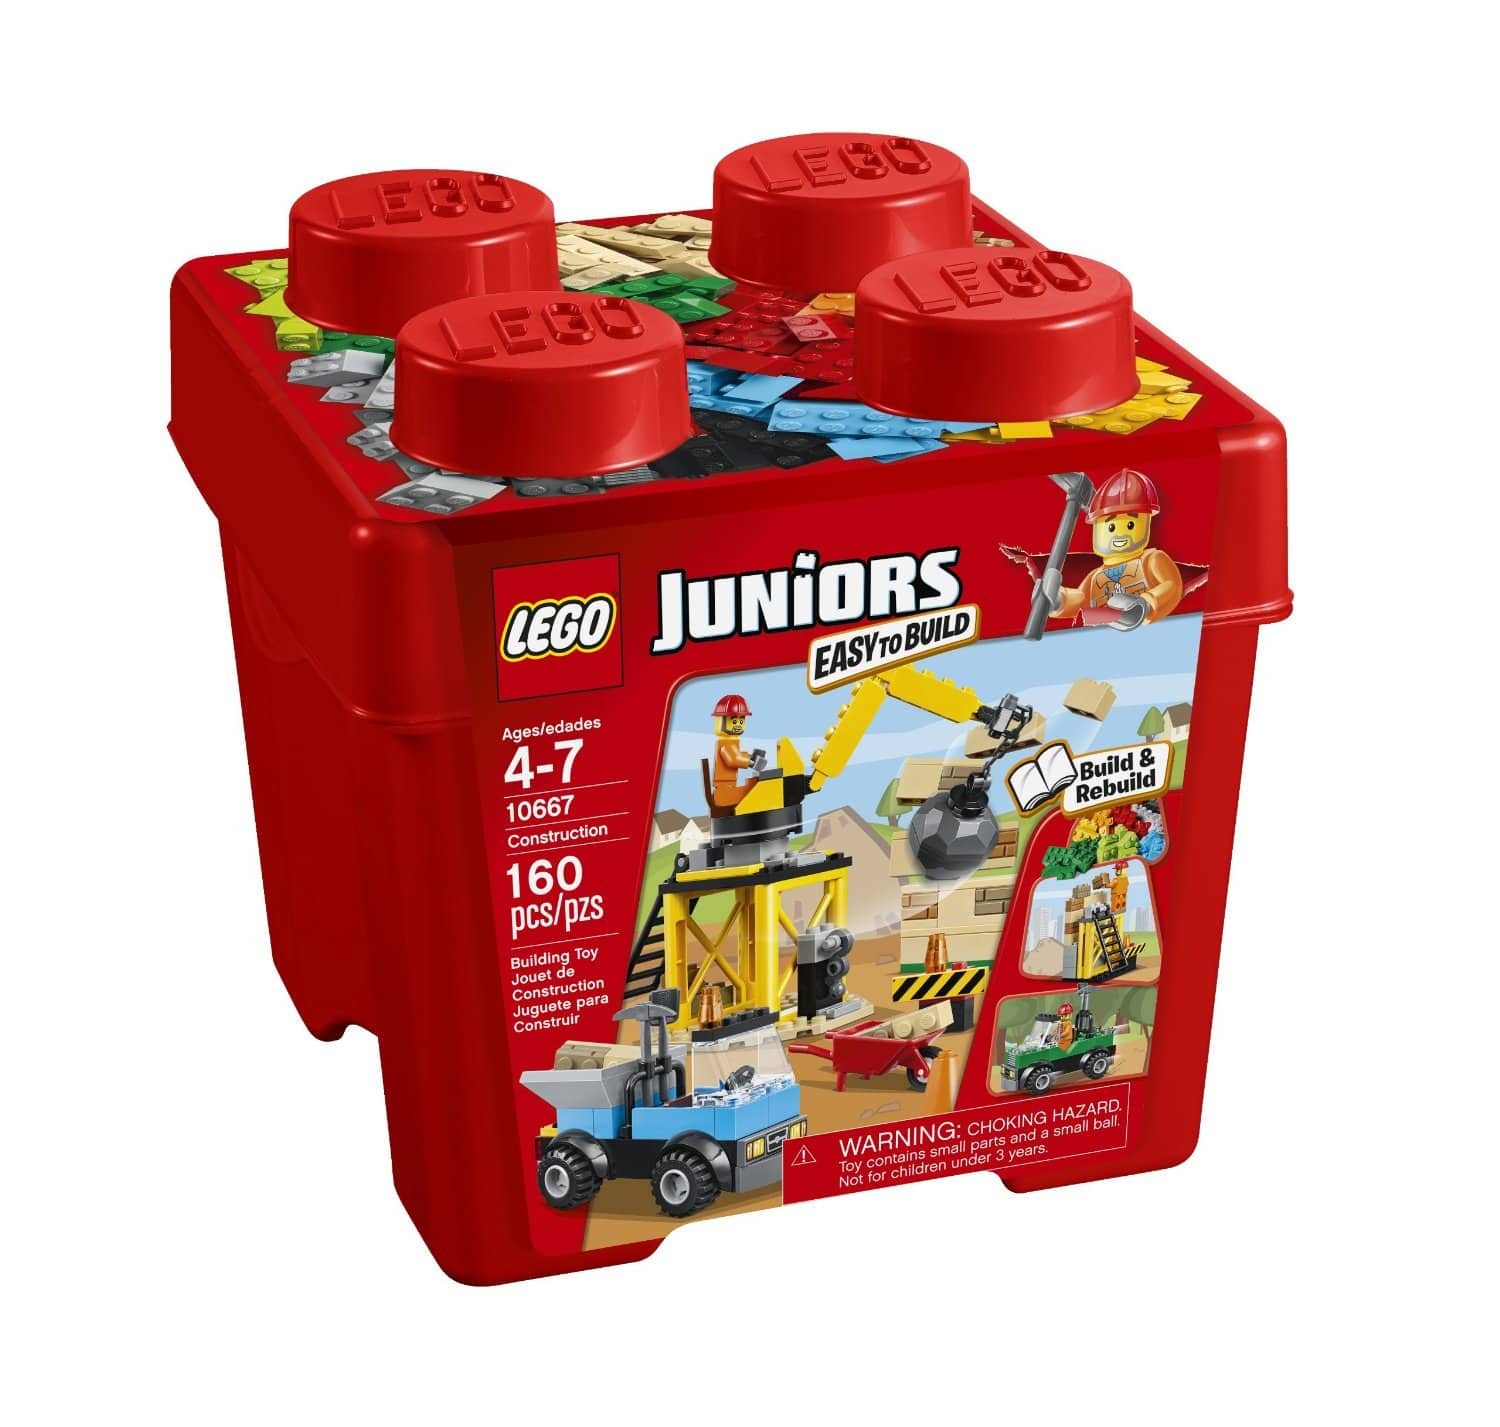 LEGO Juniors Construction Building Set  $11 + Free Ship to Store